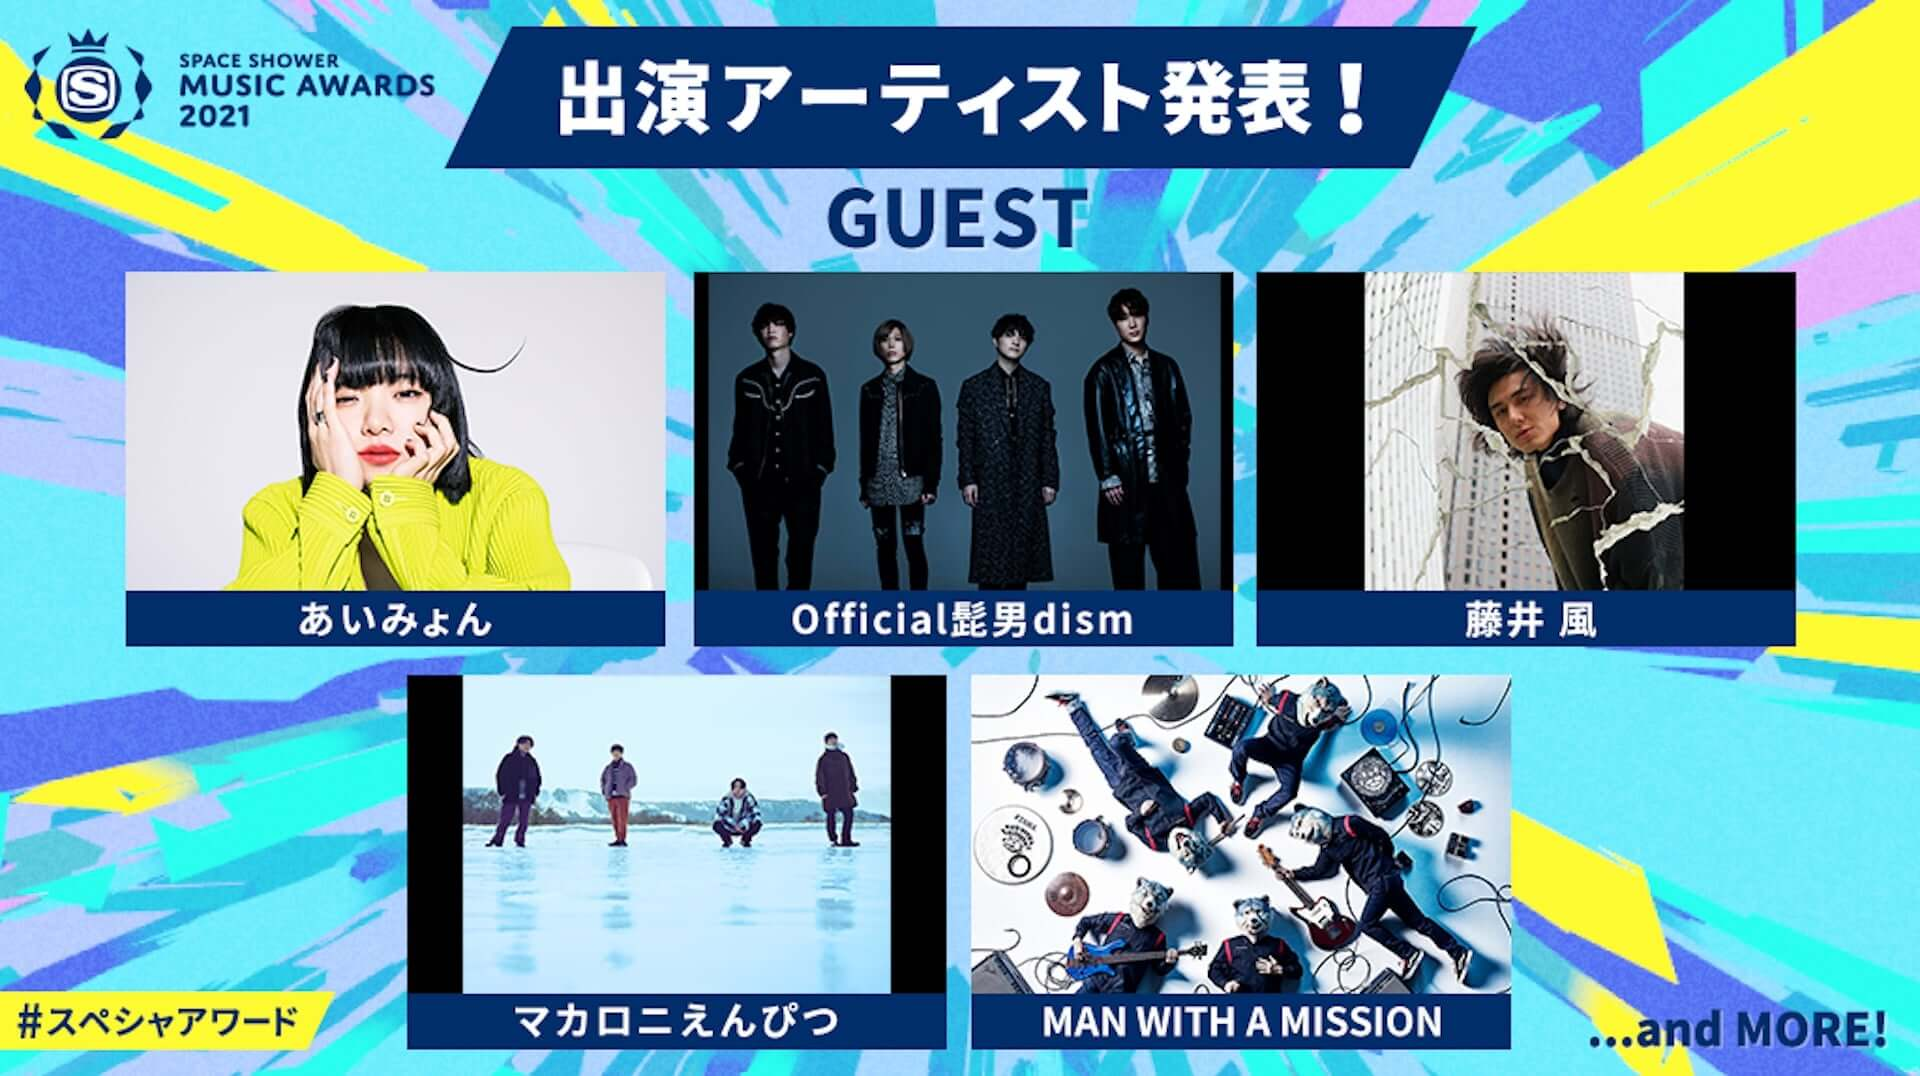 <SPACE SHOWER MUSIC AWARDS 2021>授賞式に藤井 風、あいみょん、Official髭男dismら5組がゲスト出演決定! music210217_spaceshower-musicawards_3-1920x1076